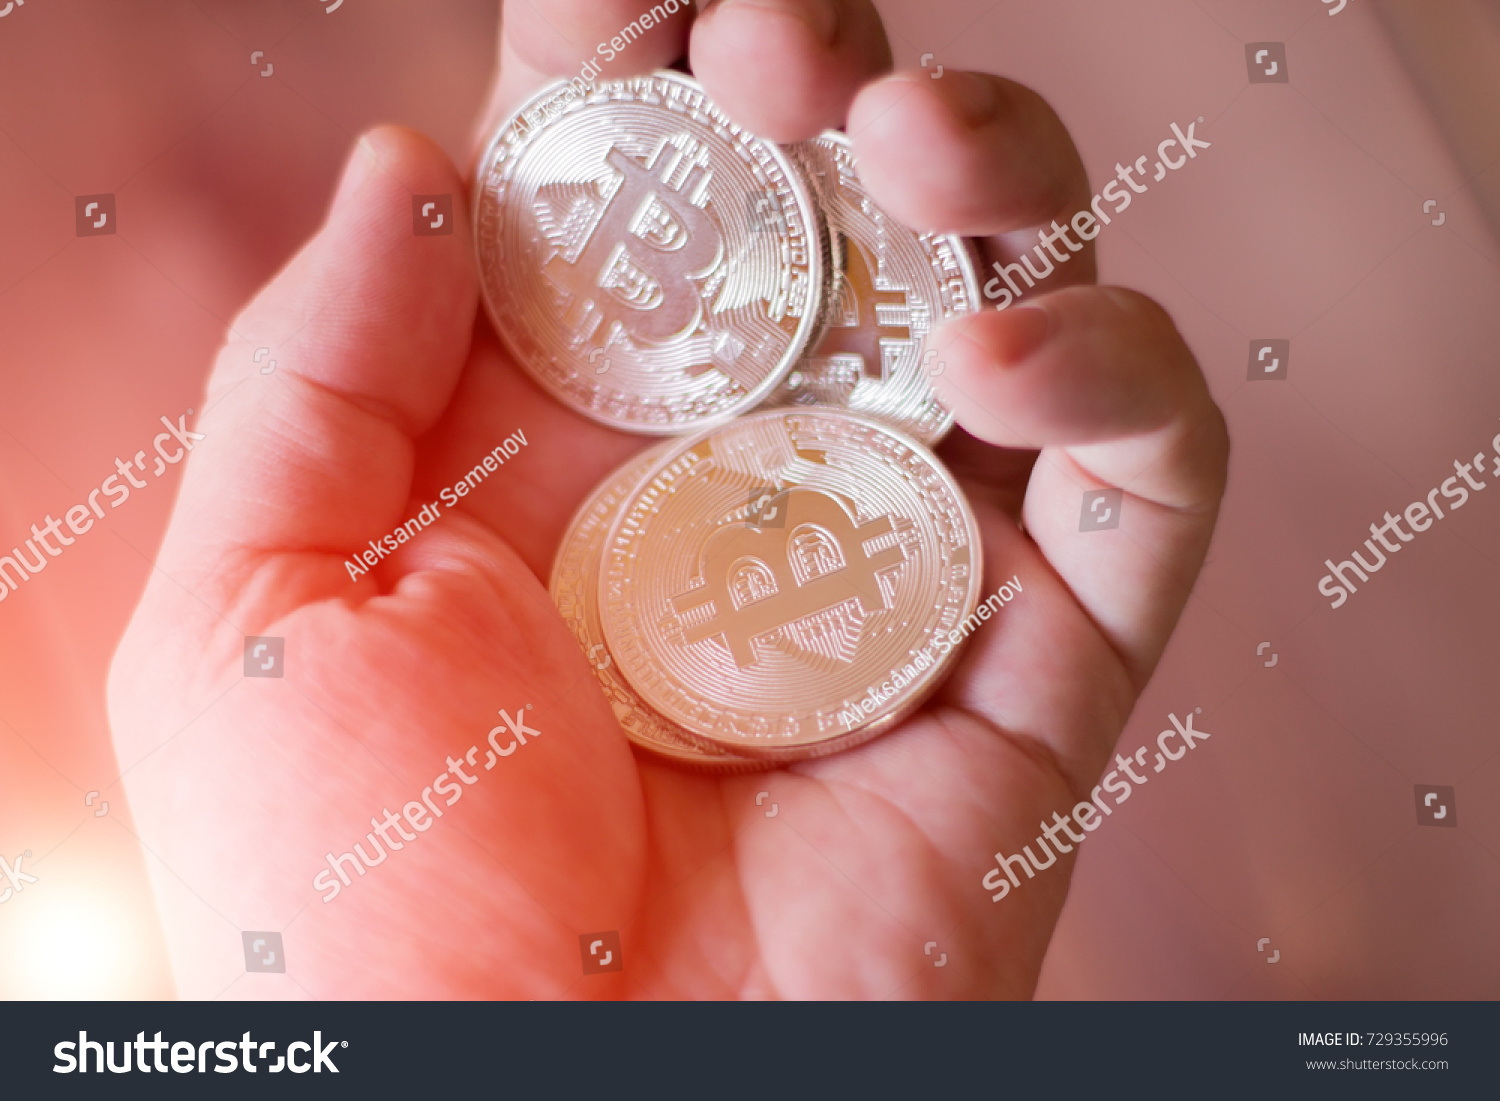 Bitcoins In The Hand A Concept From Coins Of Cryptocurrency